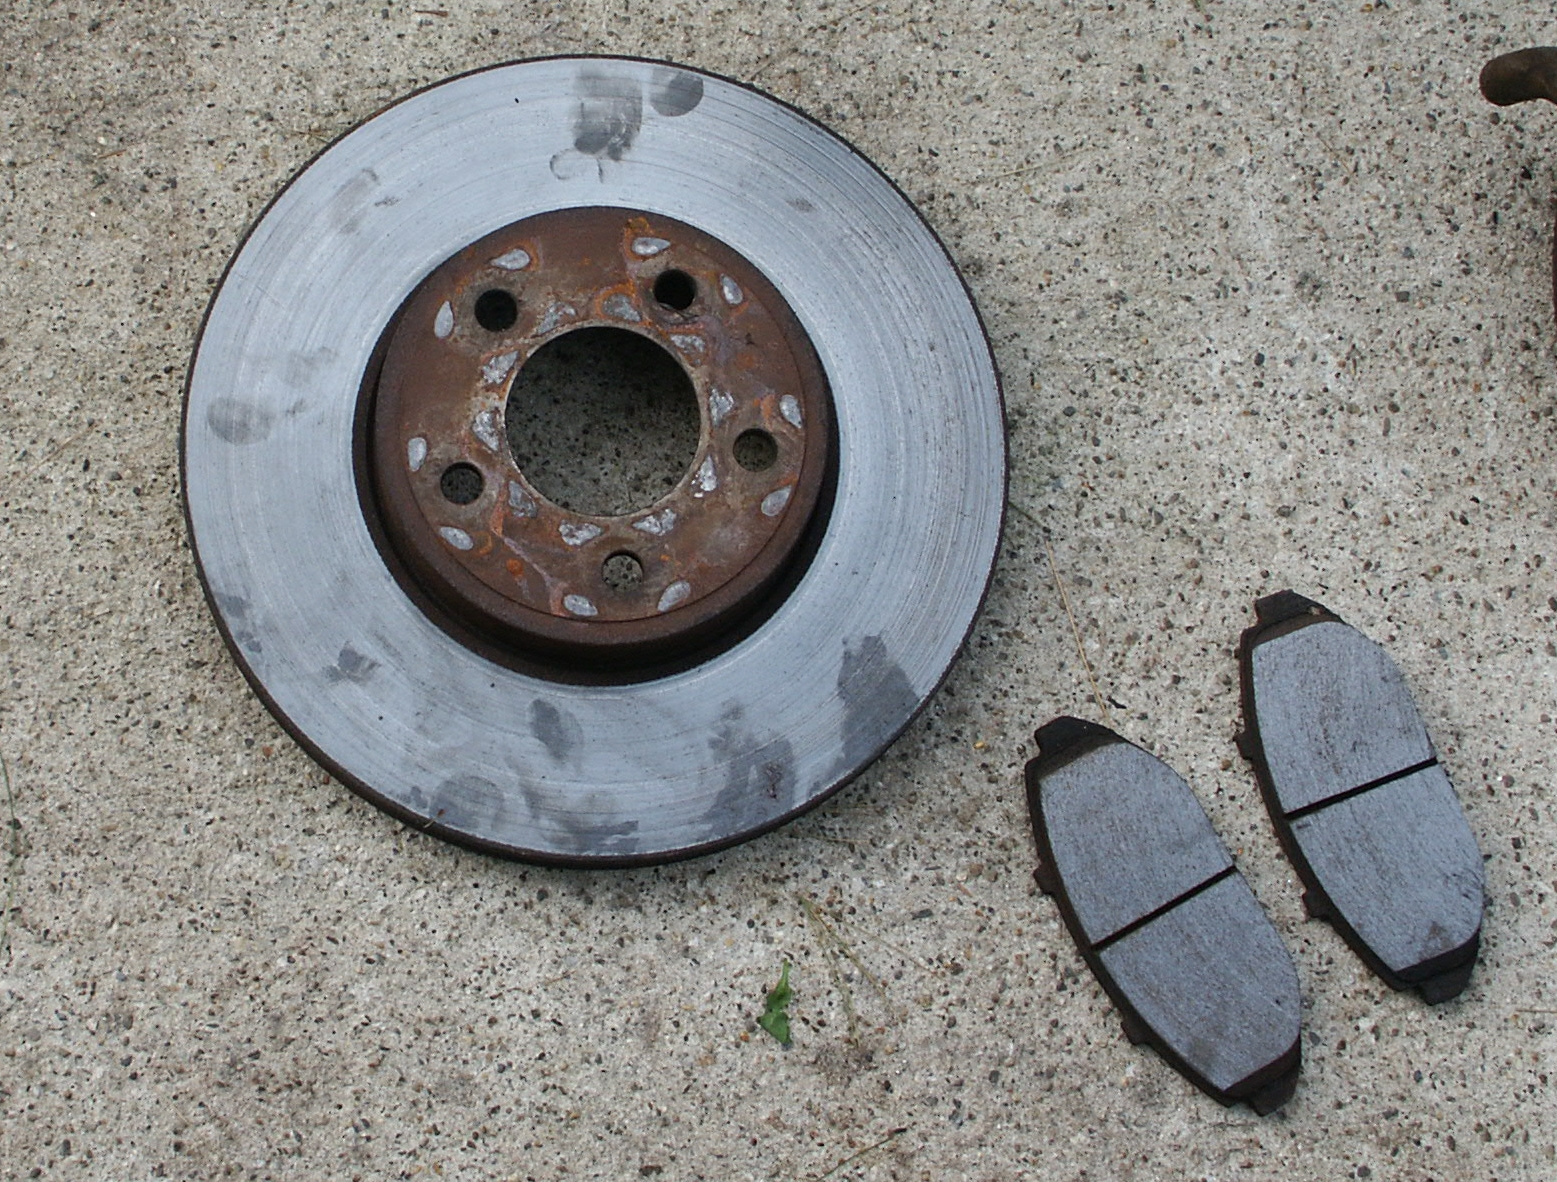 Brake Pad Replacement : How to install replace front brake pads rotors ford crown